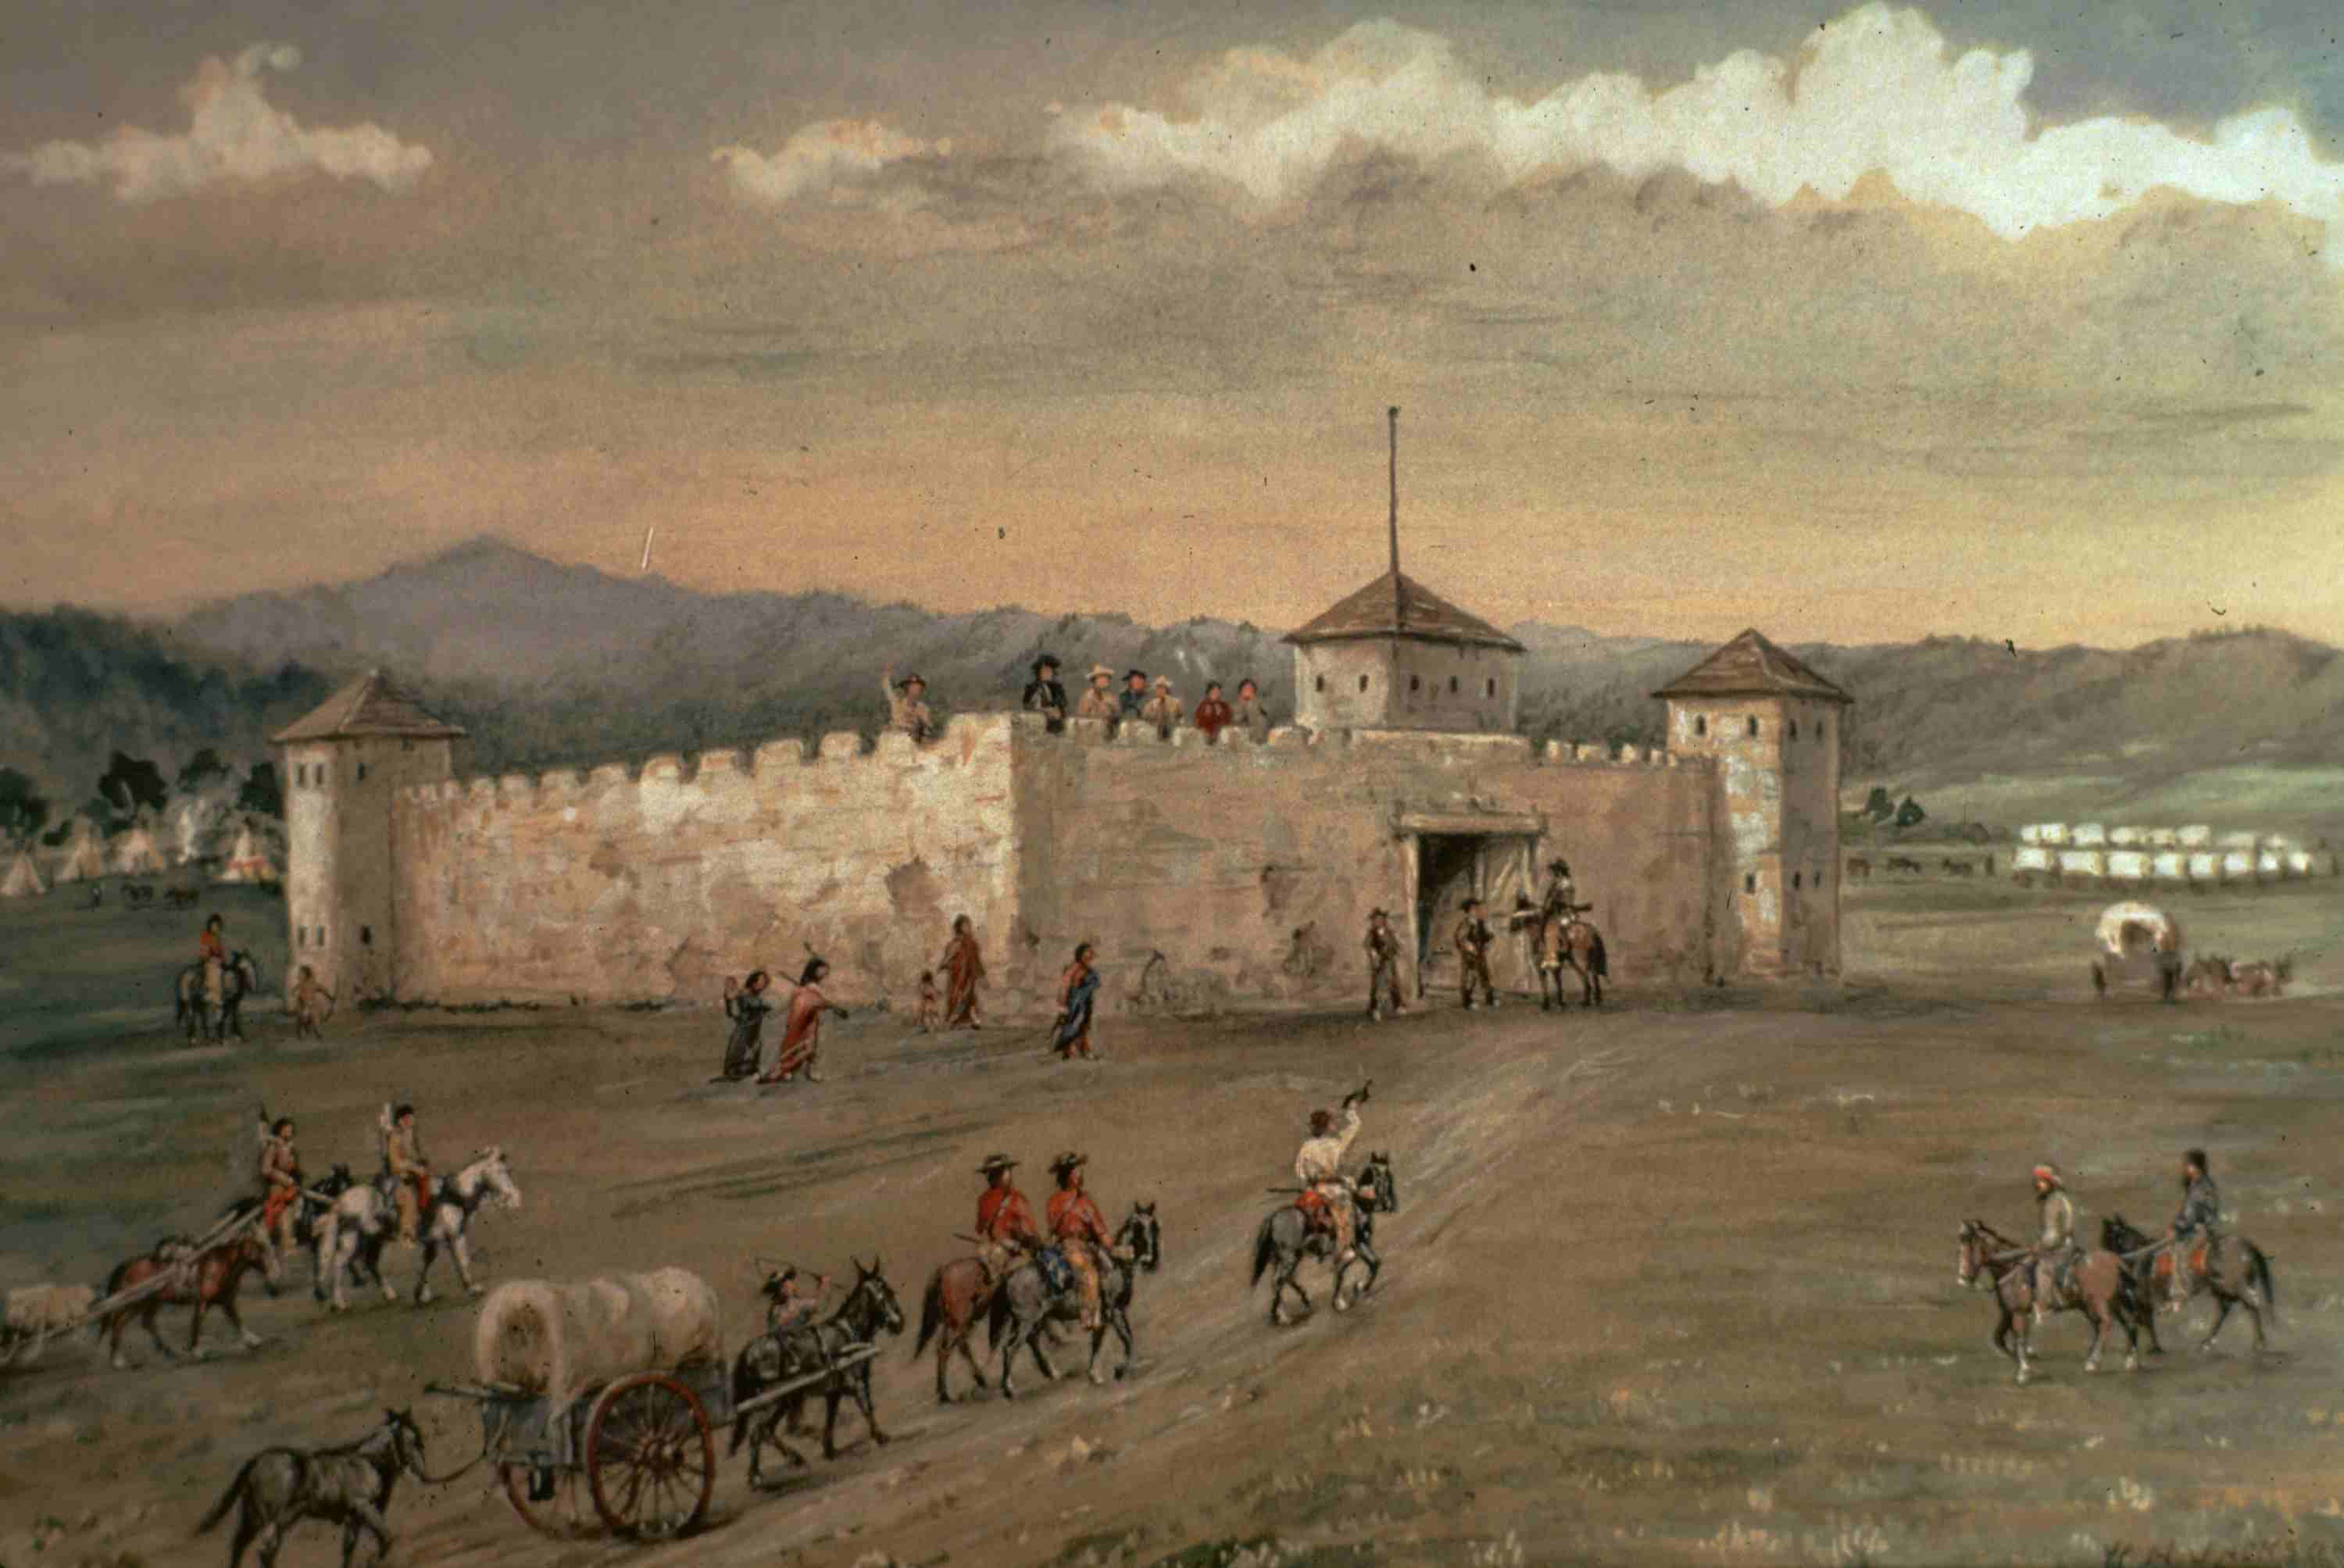 Settlers arriving at Fort Laramie, full color painting.